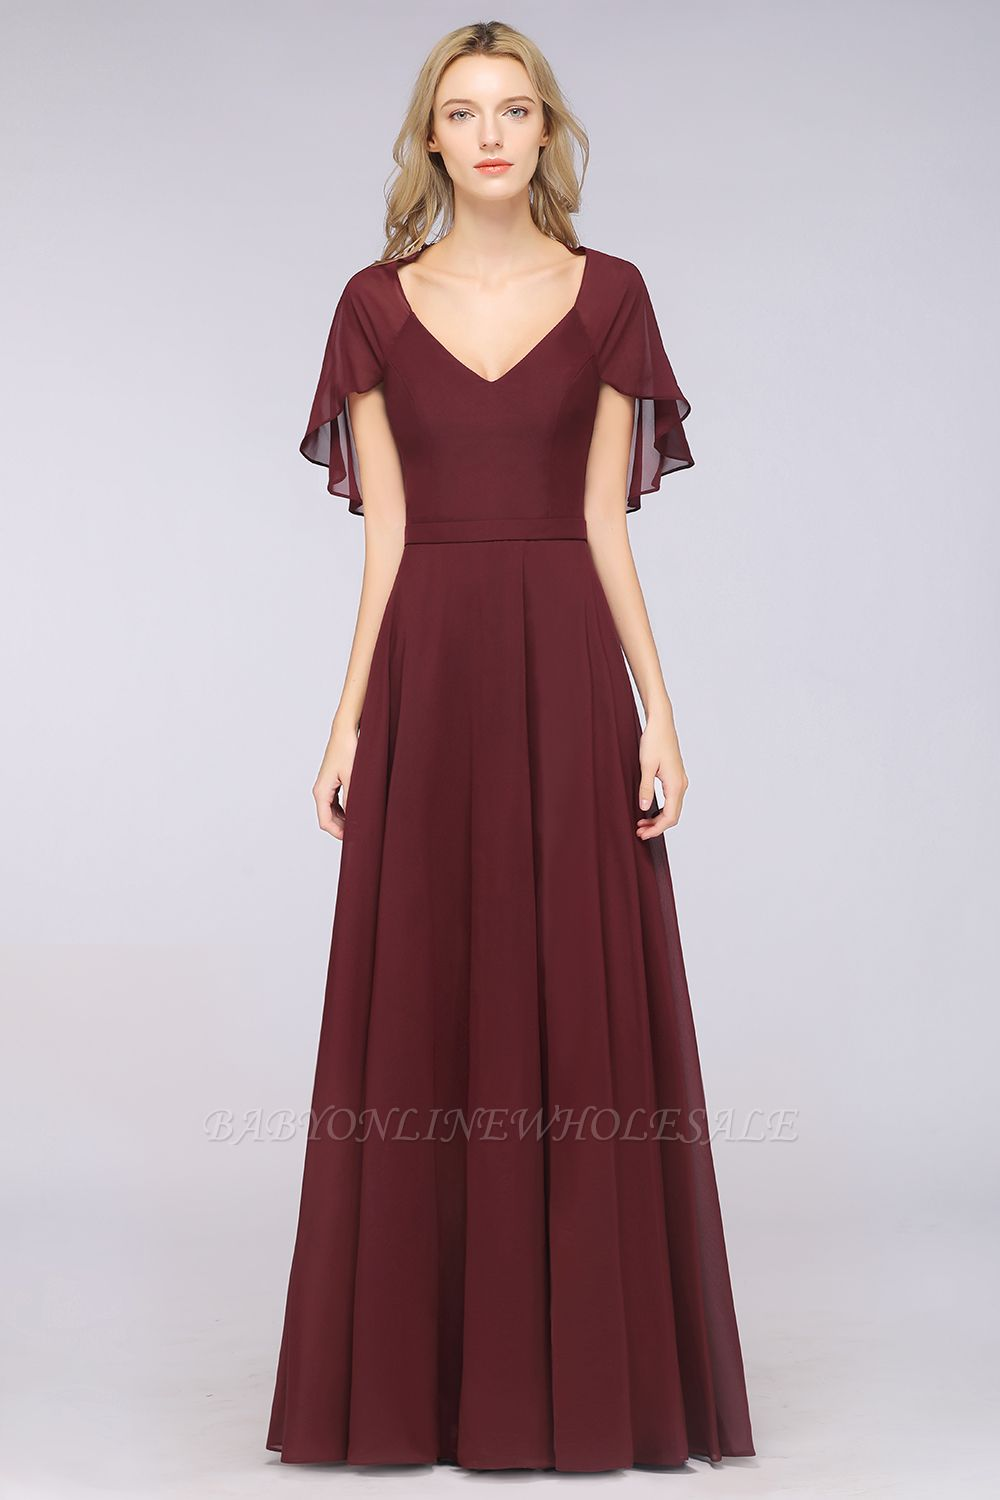 Chiffon Satin A-Line V-Neck short-sleeves Long Bridesmaid Dress